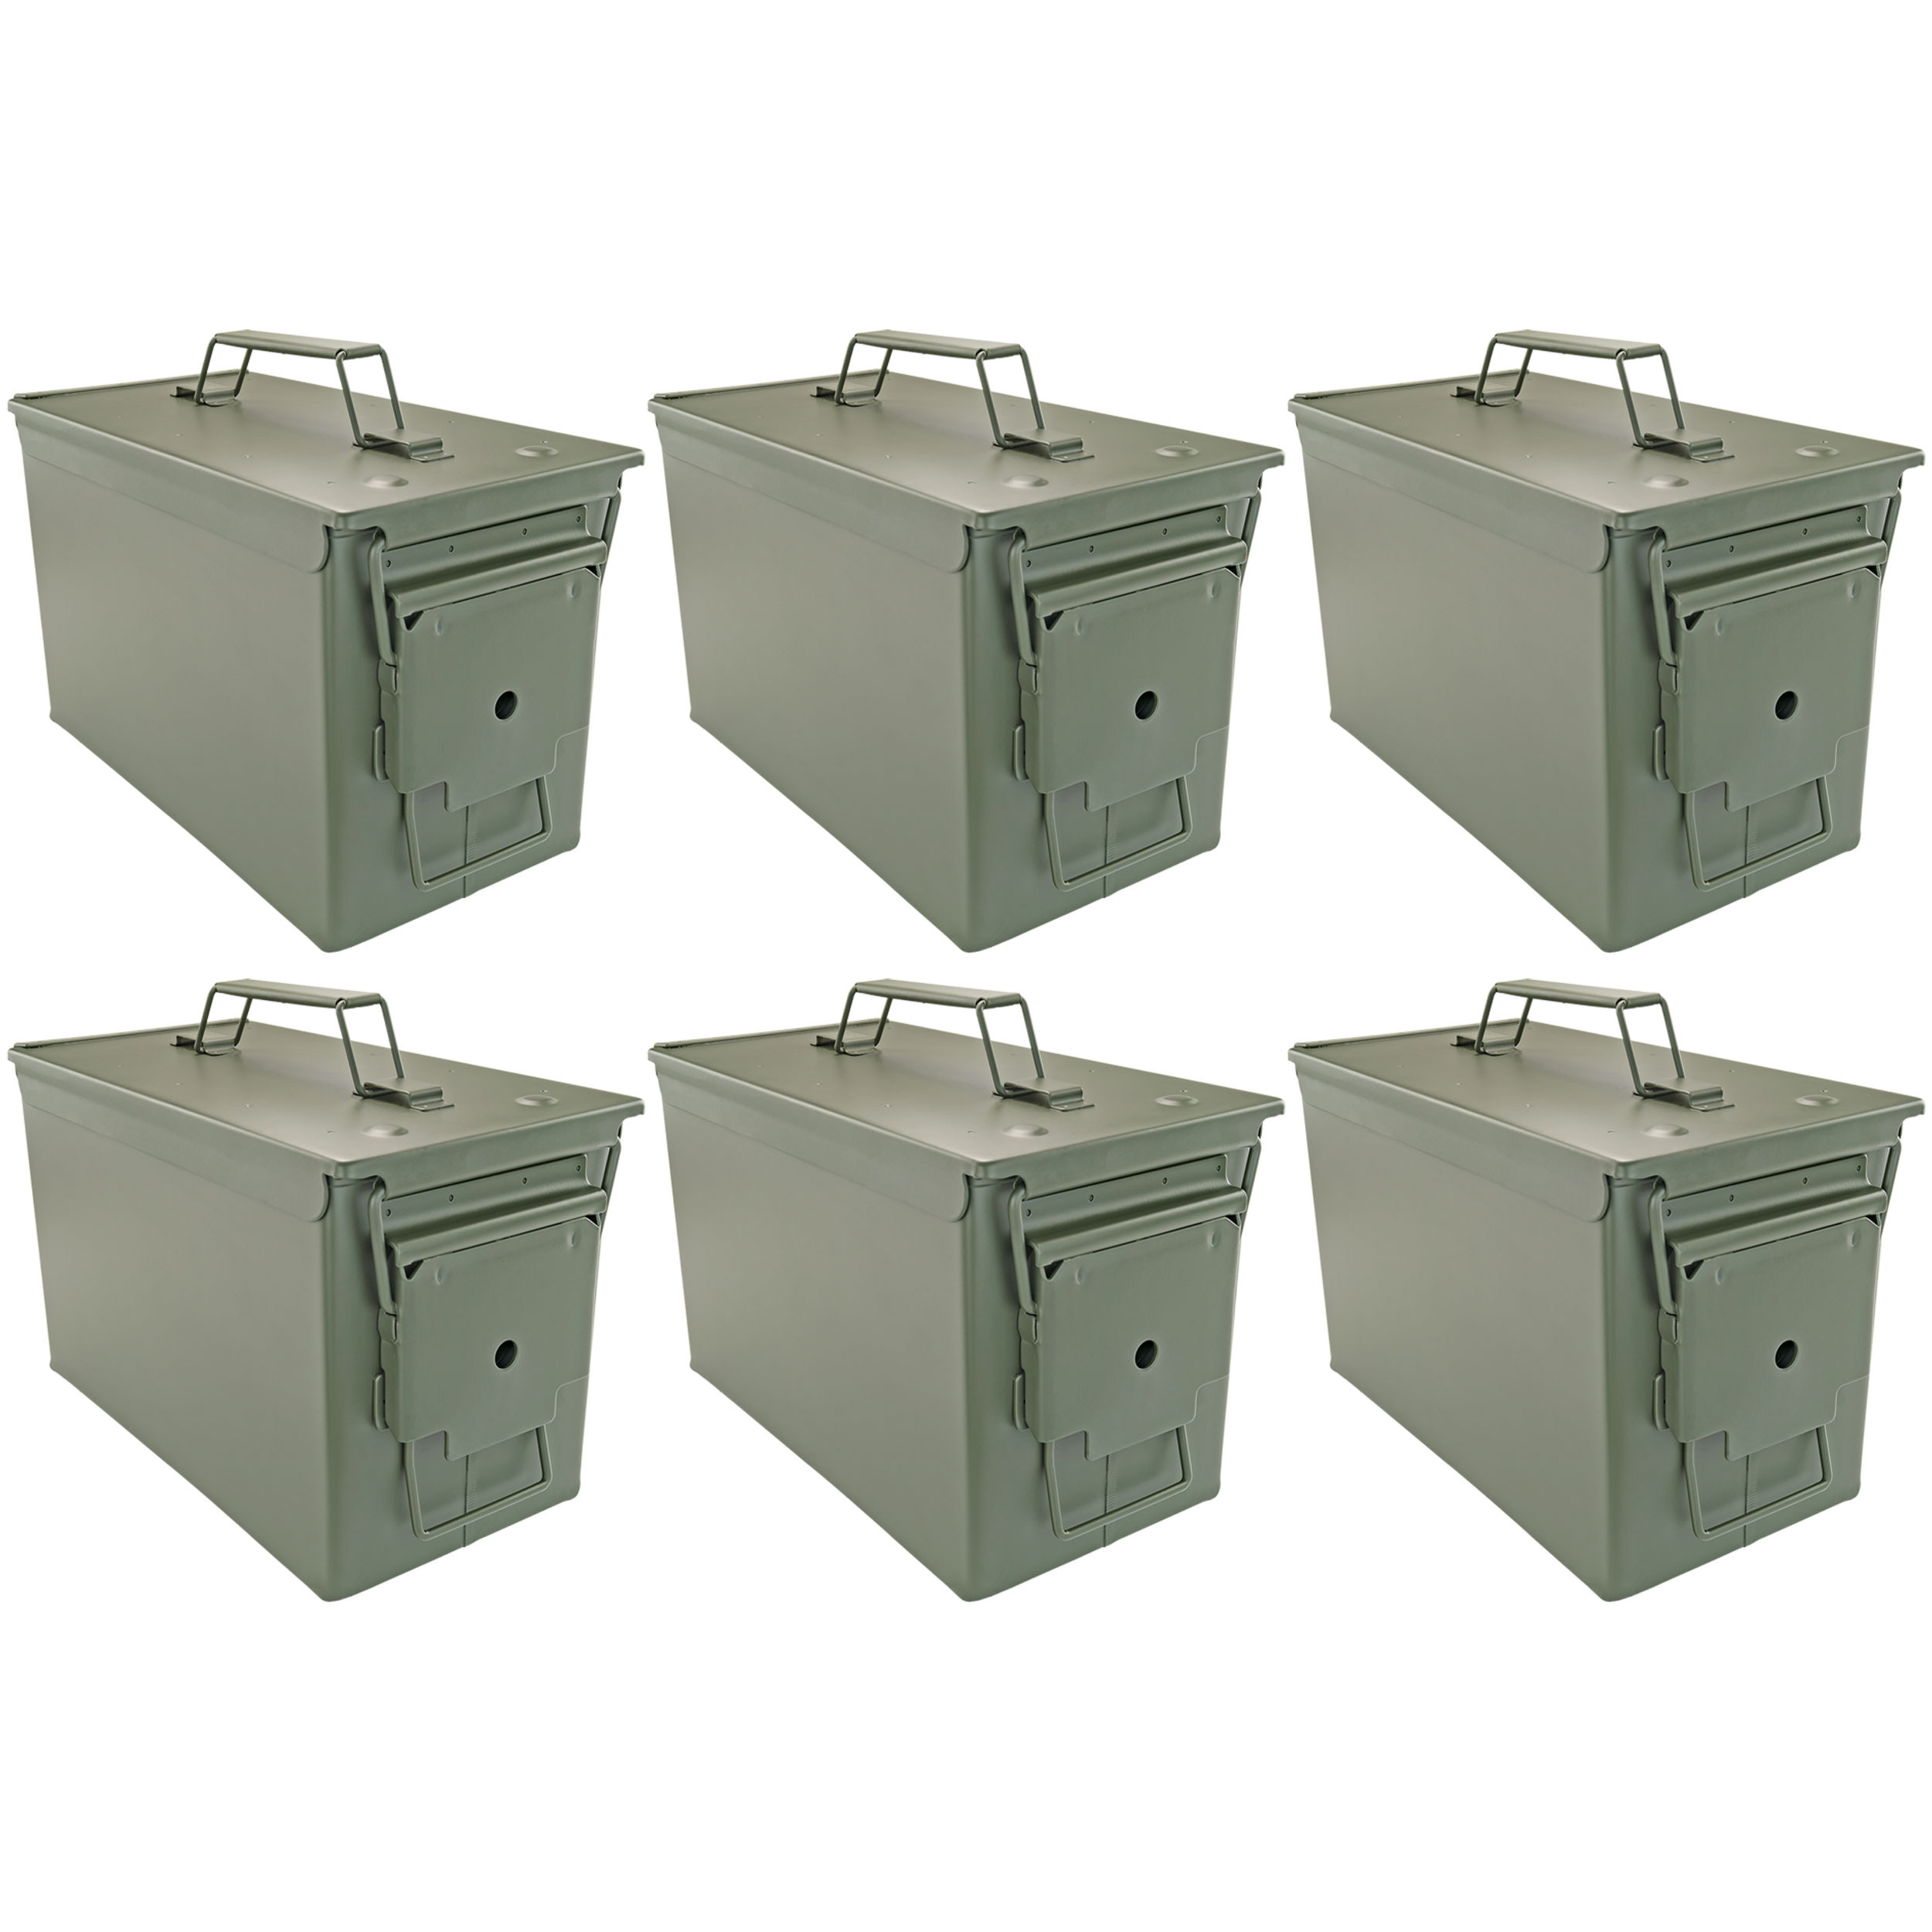 .50 Cal Ammo Cans, Set of 6